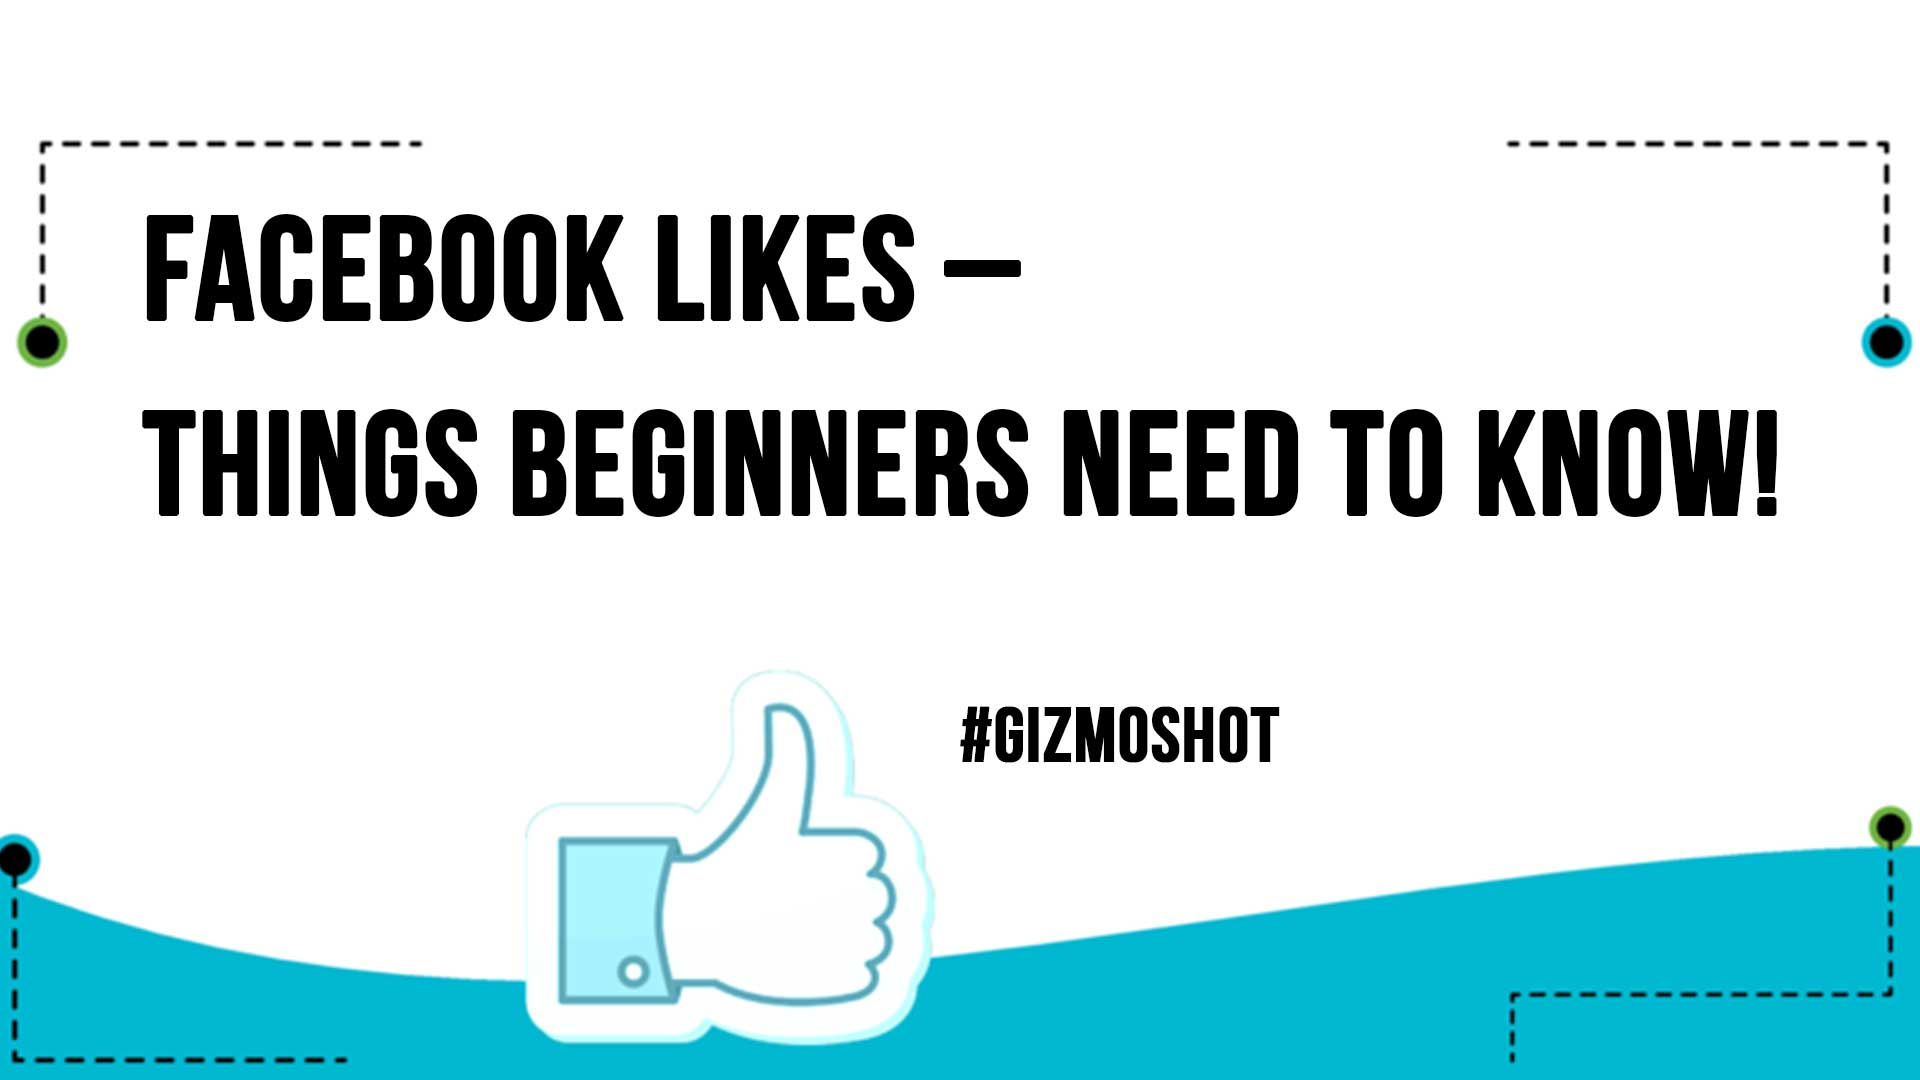 Facebook Likes Things Beginners Need To Know 1